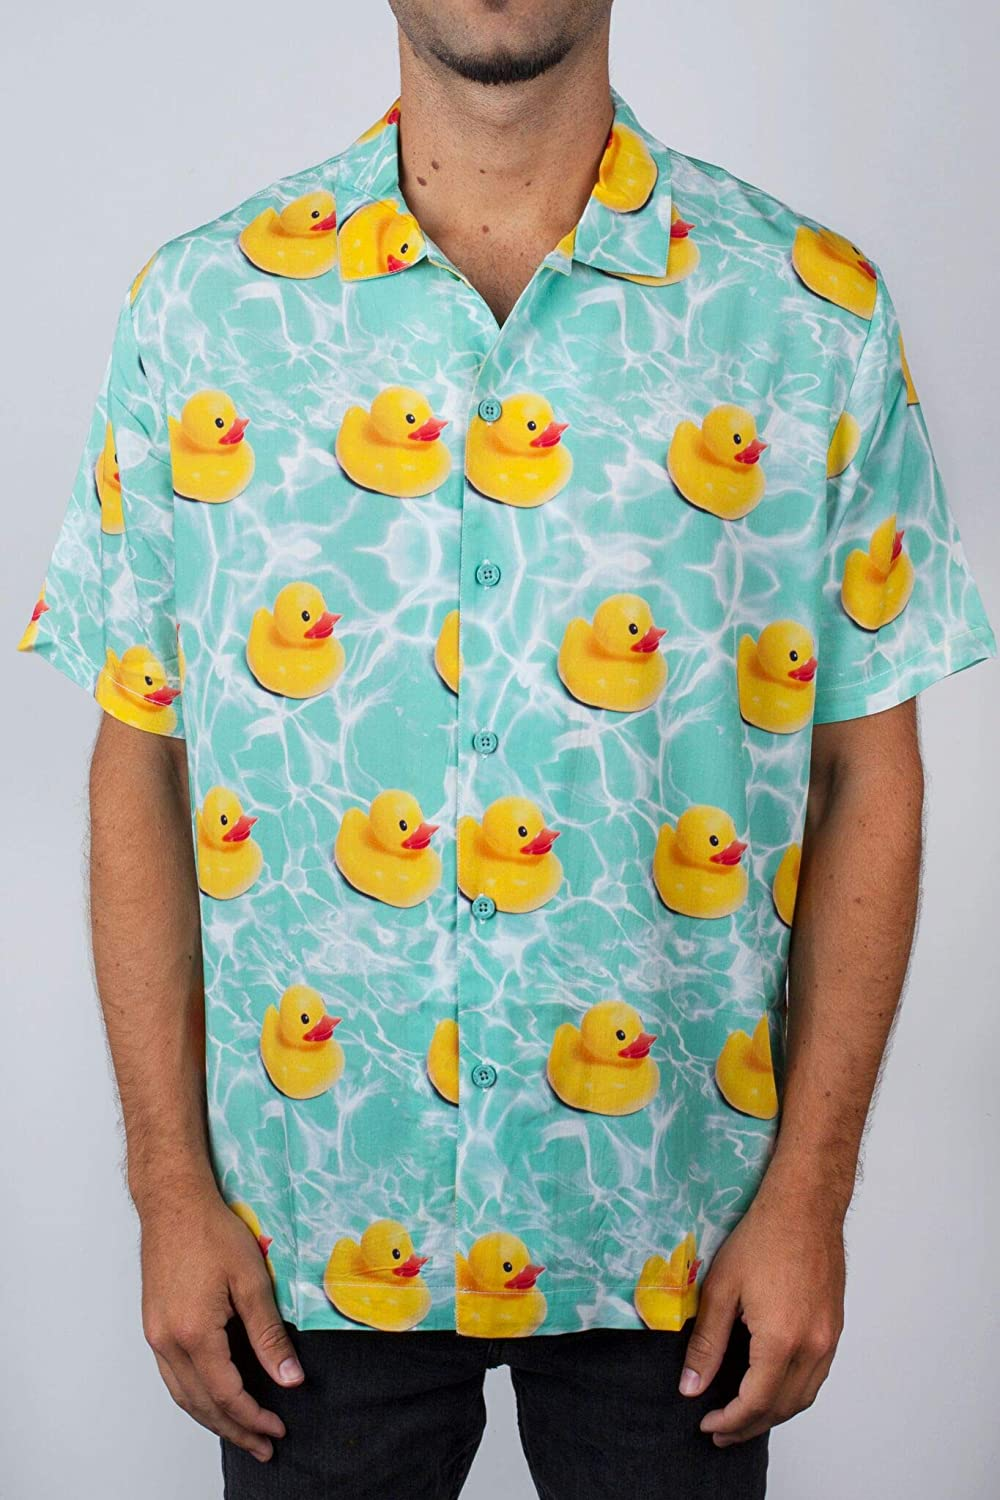 Turquoise rougeuck L NEFF Daily Pool Sider Camicia Turquoise rougeUCK PE19